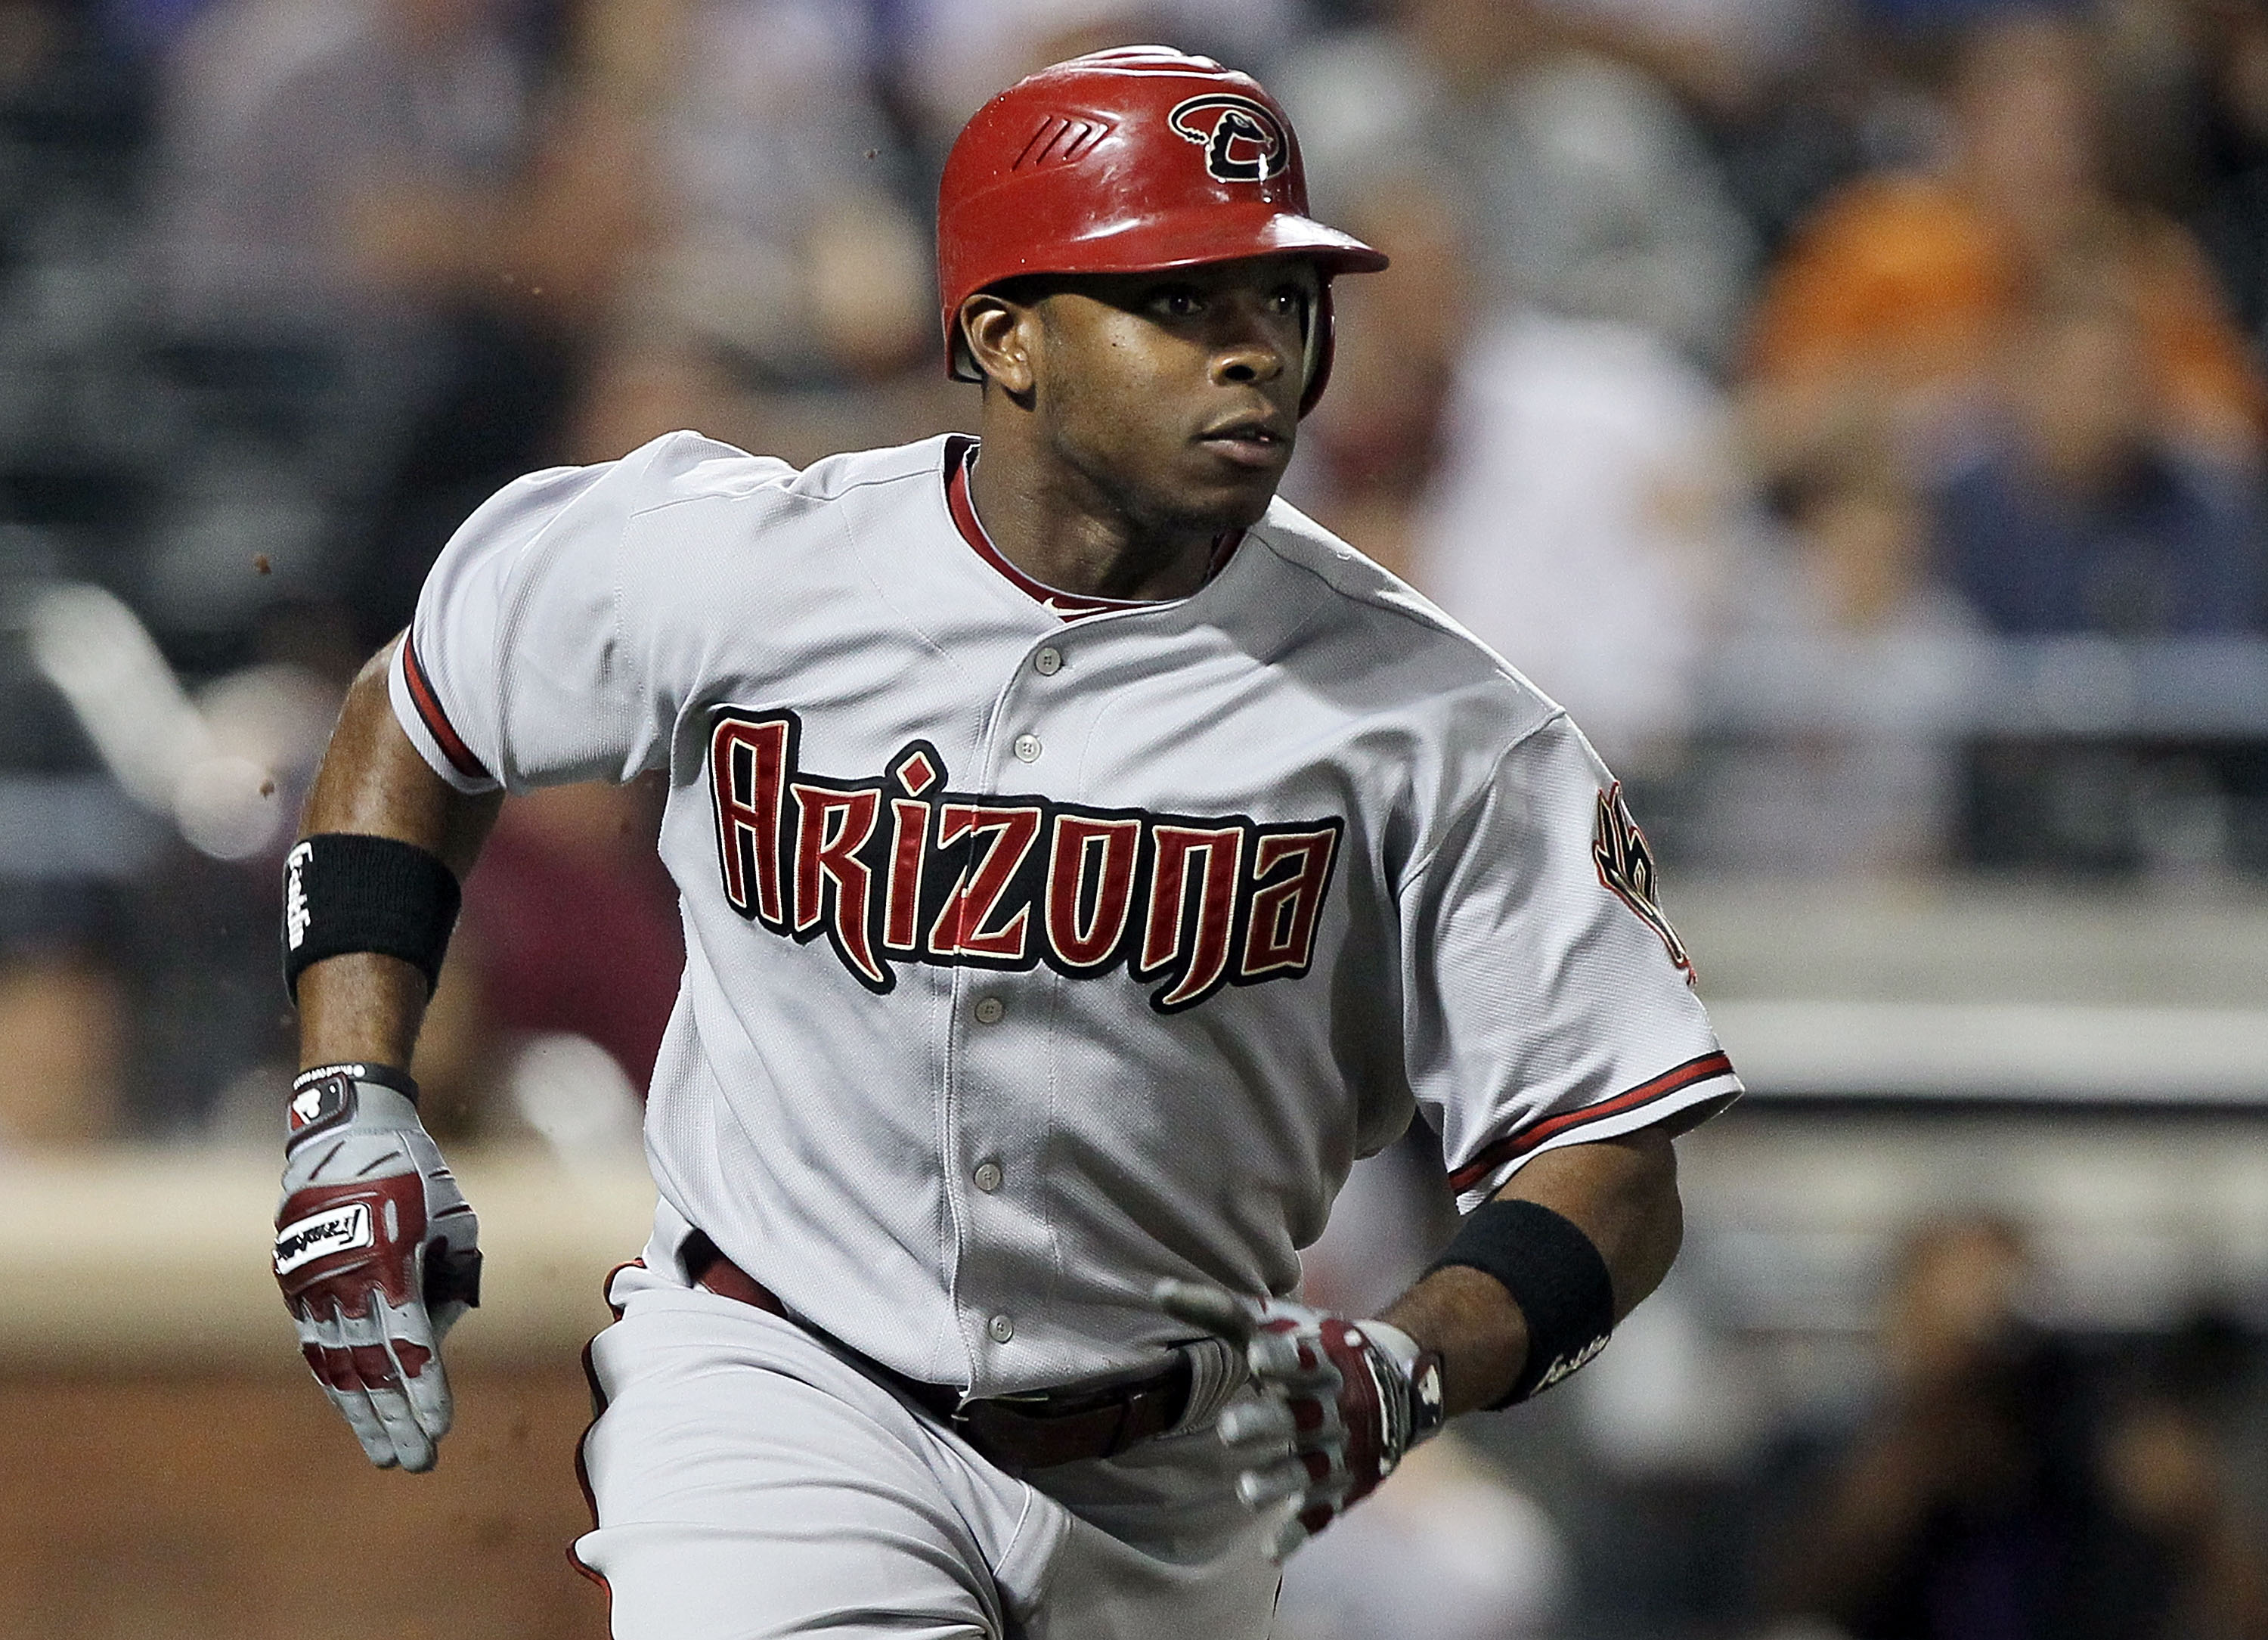 NEW YORK - JULY 31:  Justin Upton #10 of the Arizona Diamondbacks runs after hitting a seventh inning two run single against the New York Mets on July 31, 2010 at Citi Field in the Flushing neighborhood of the Queens borough of New York City.  (Photo by J